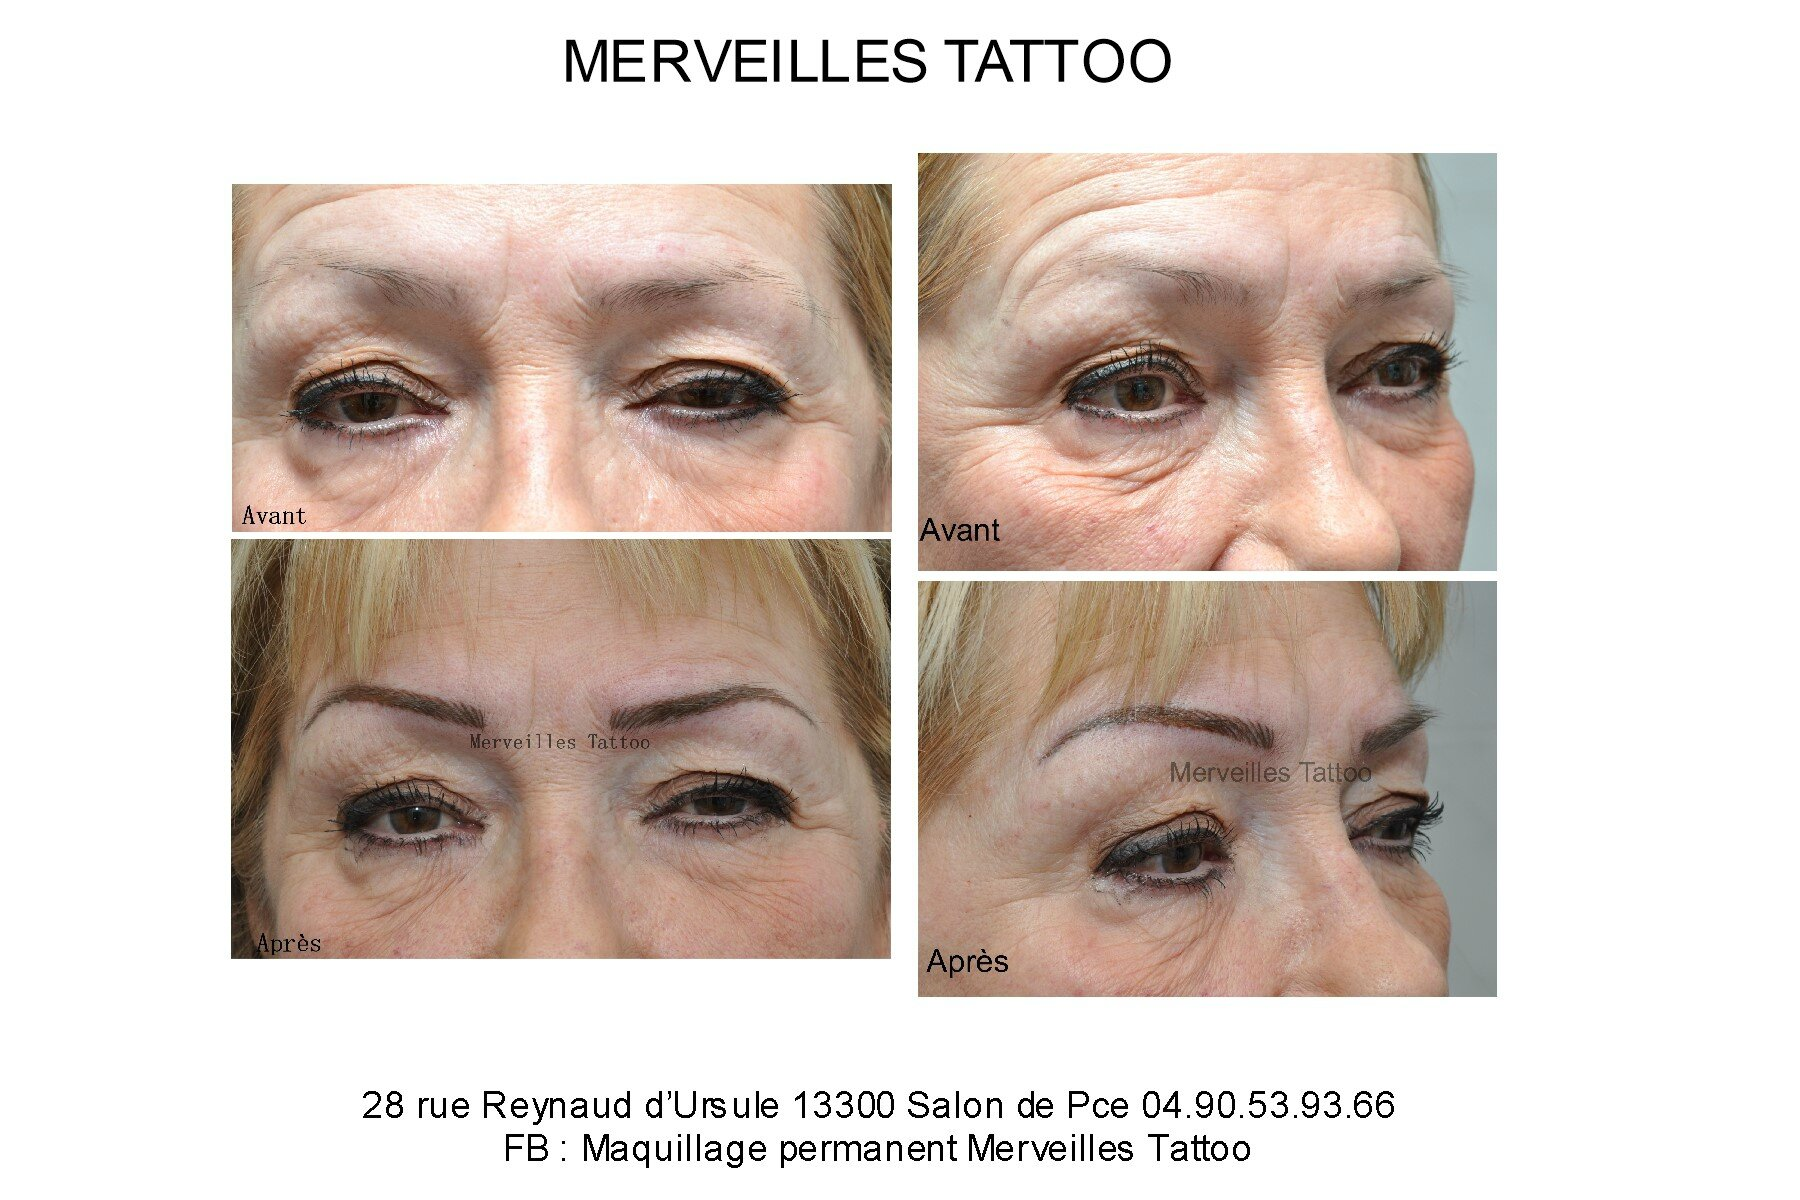 Salon Maquillage Maquillage Permanent Salon De Provence Tous Les Messages Sur